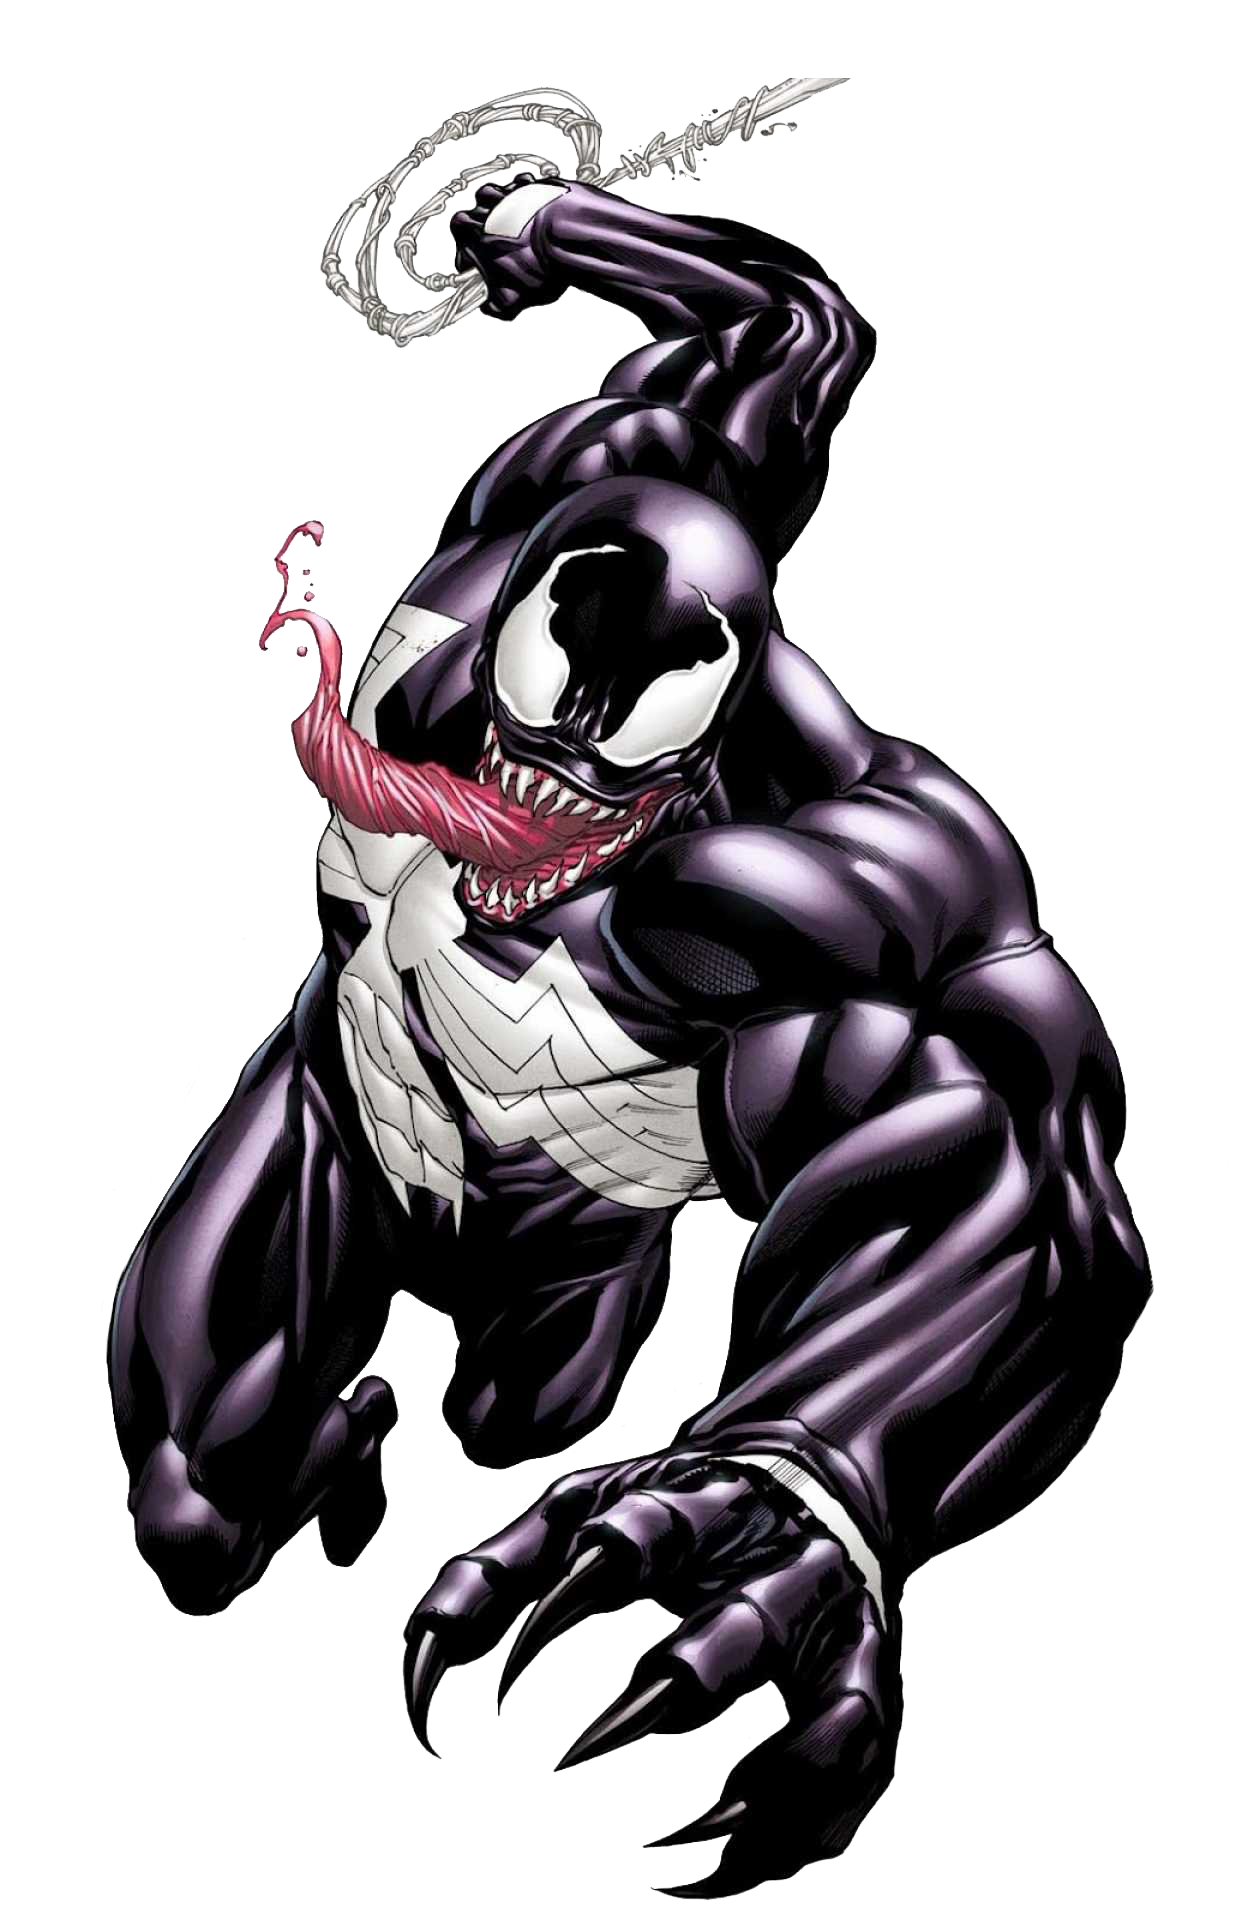 venom marvel villains wiki fandom powered by wikia. Black Bedroom Furniture Sets. Home Design Ideas